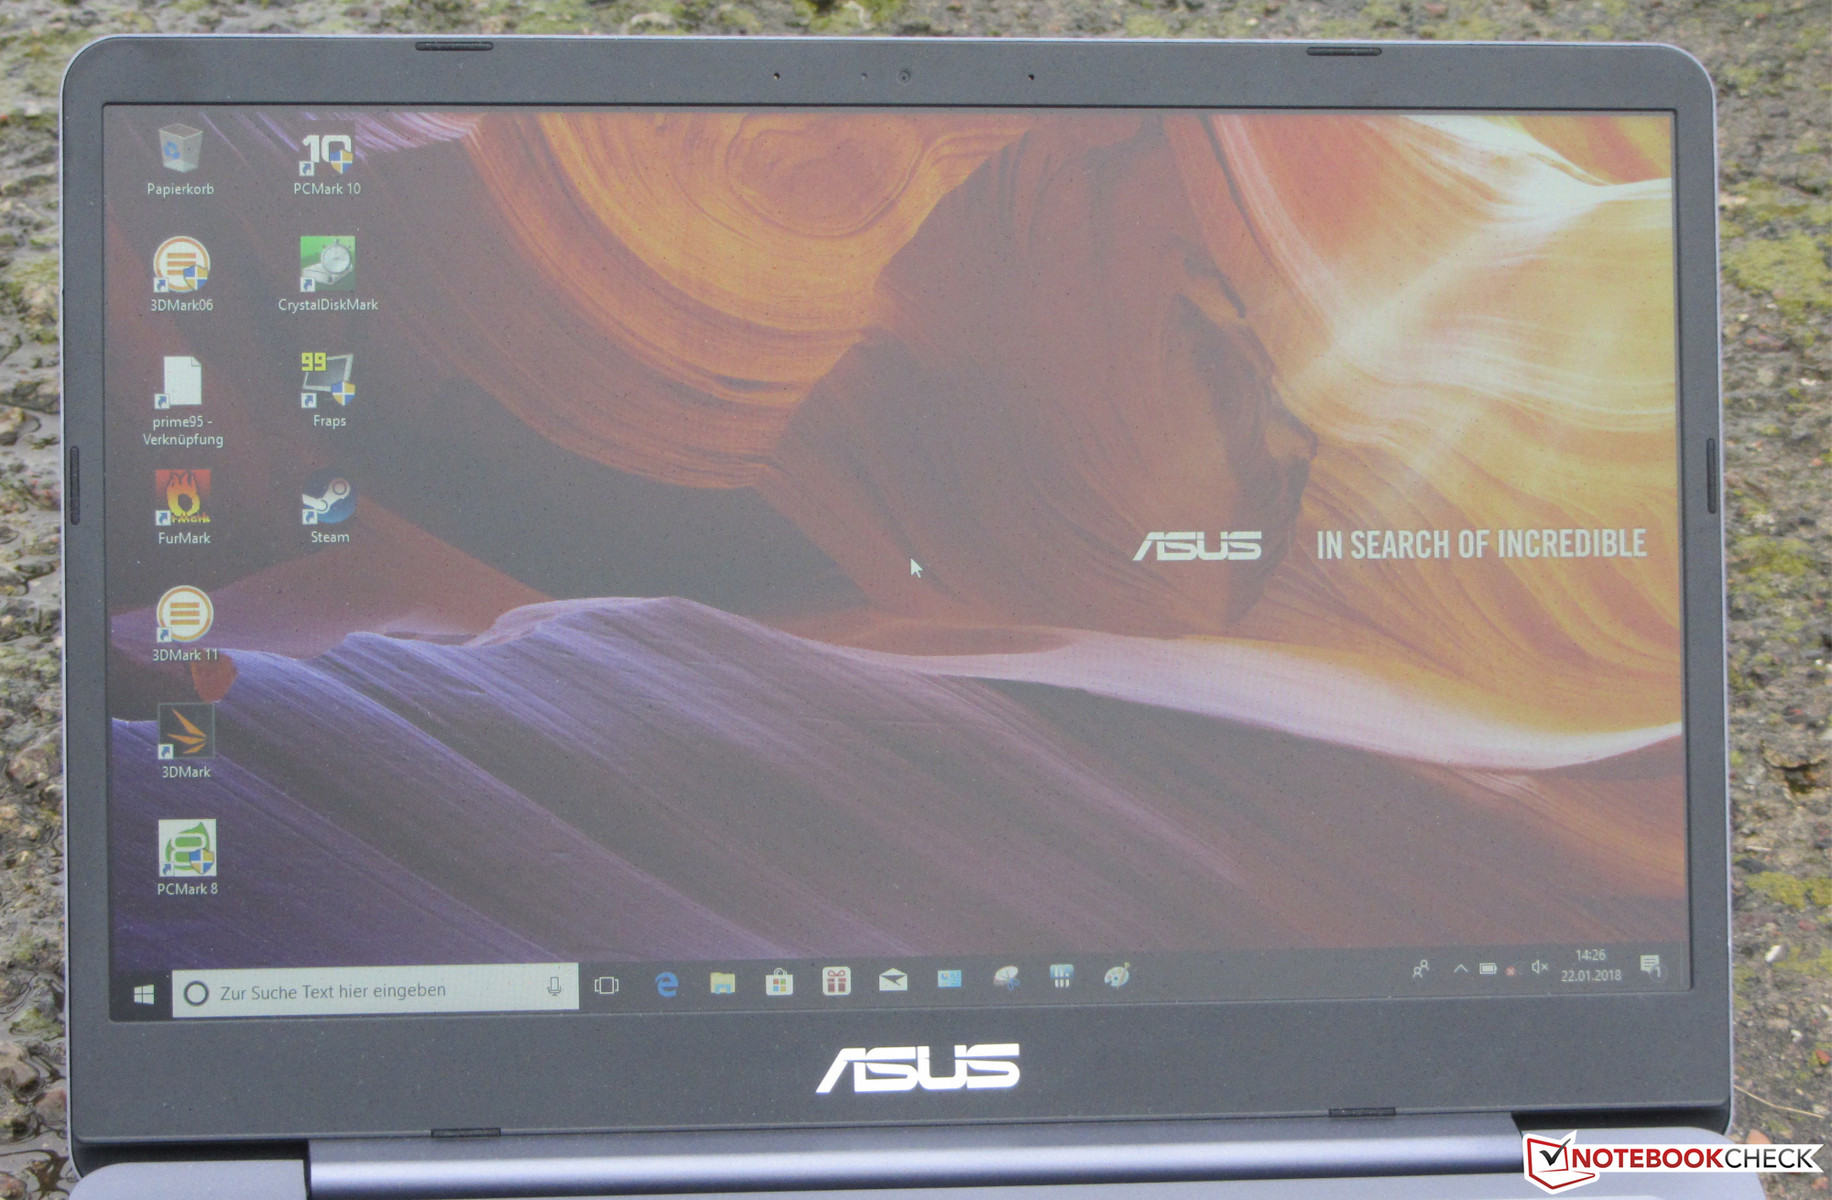 Test Asus Vivobook S14 S406ua I5 8250u Ssd Hd Laptop